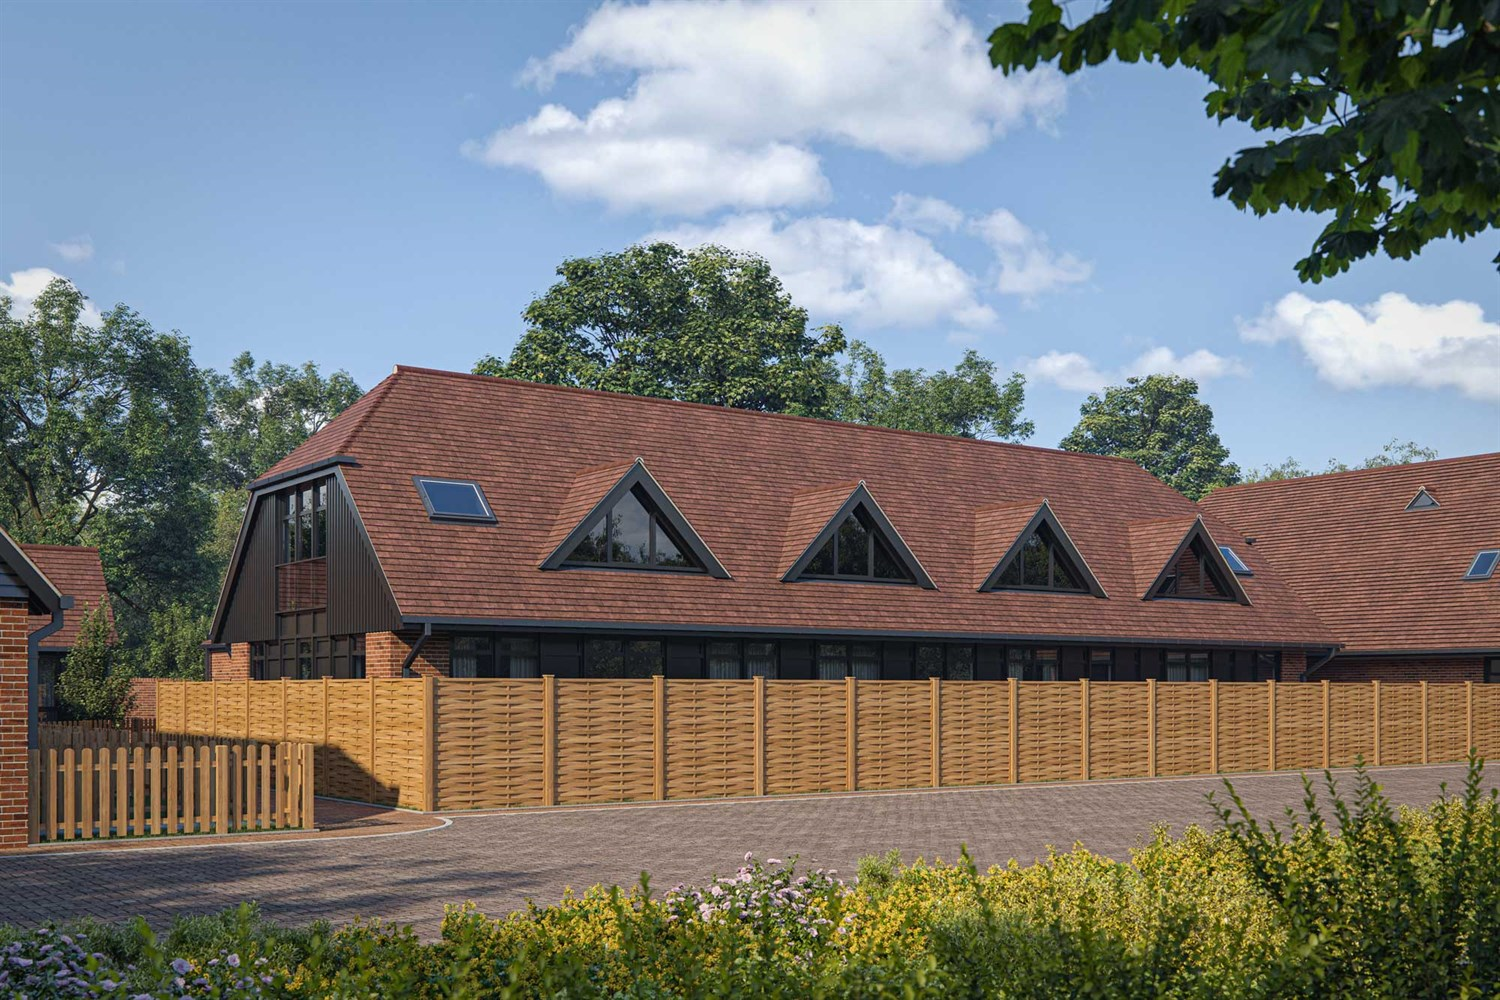 New Barn at Beansheaf Grange - 2 bed apartment, Calcot, Reading RG31 7BW